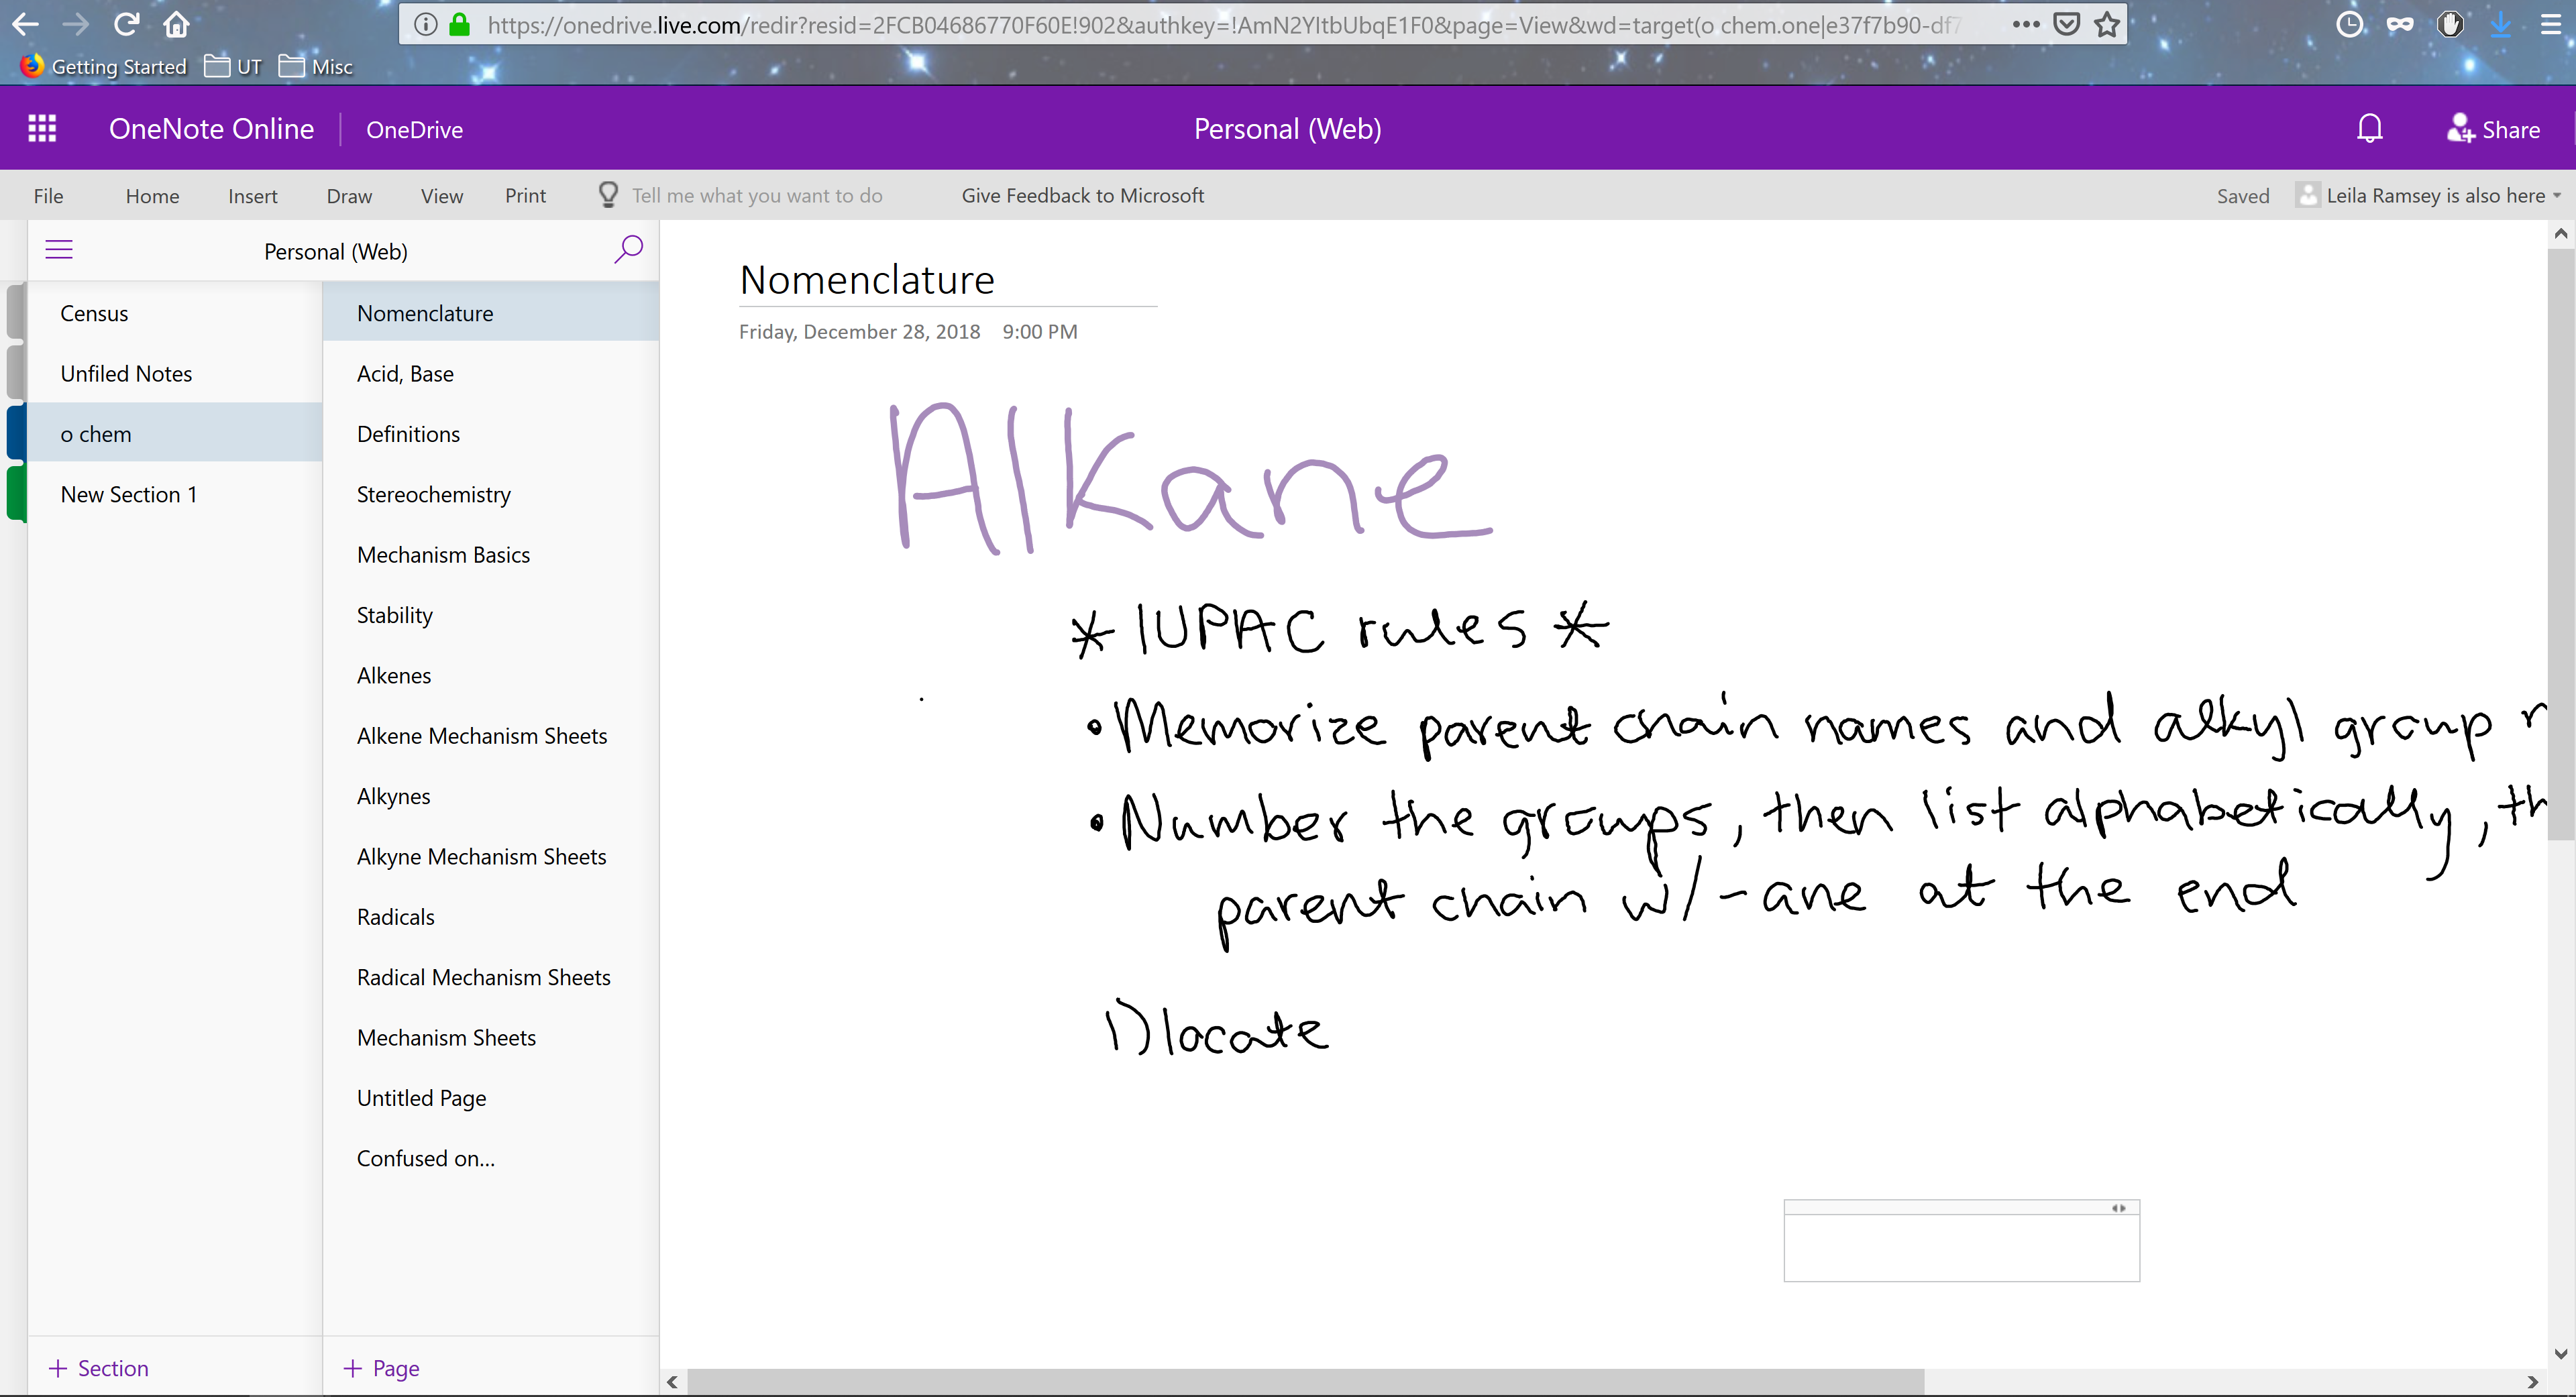 How to access a shared OneNote Notebook from the desktop app